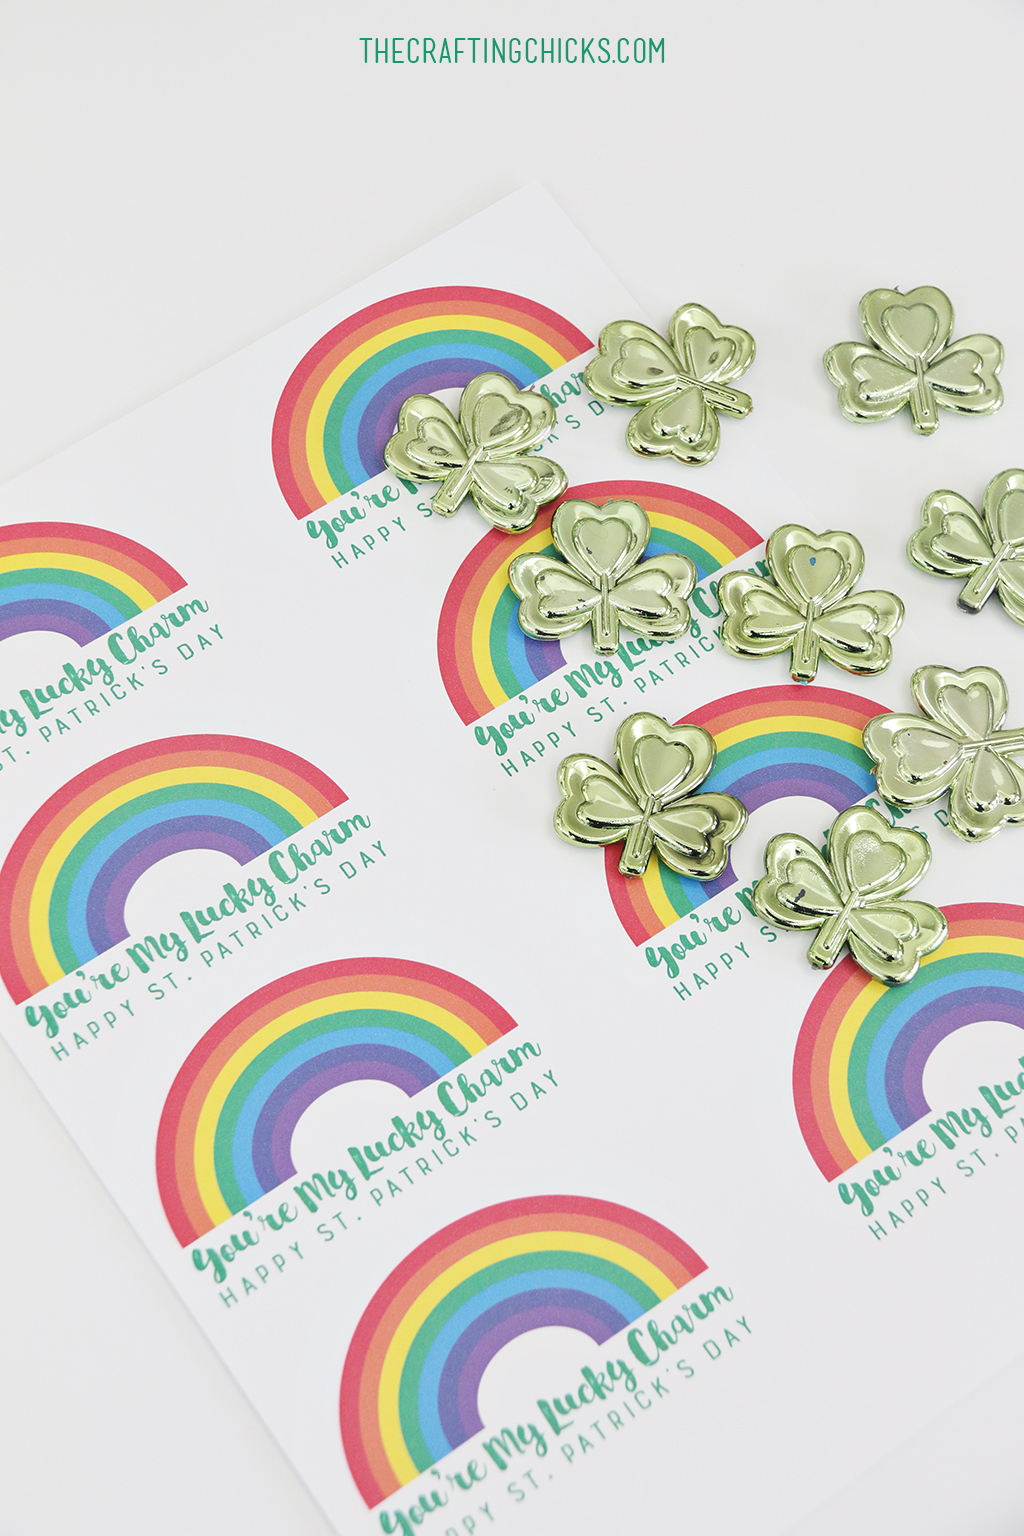 Lucky Charm Printable - Just attach a treat or gift, or slip in a lunch box! A fun St. Patrick's Day gift!